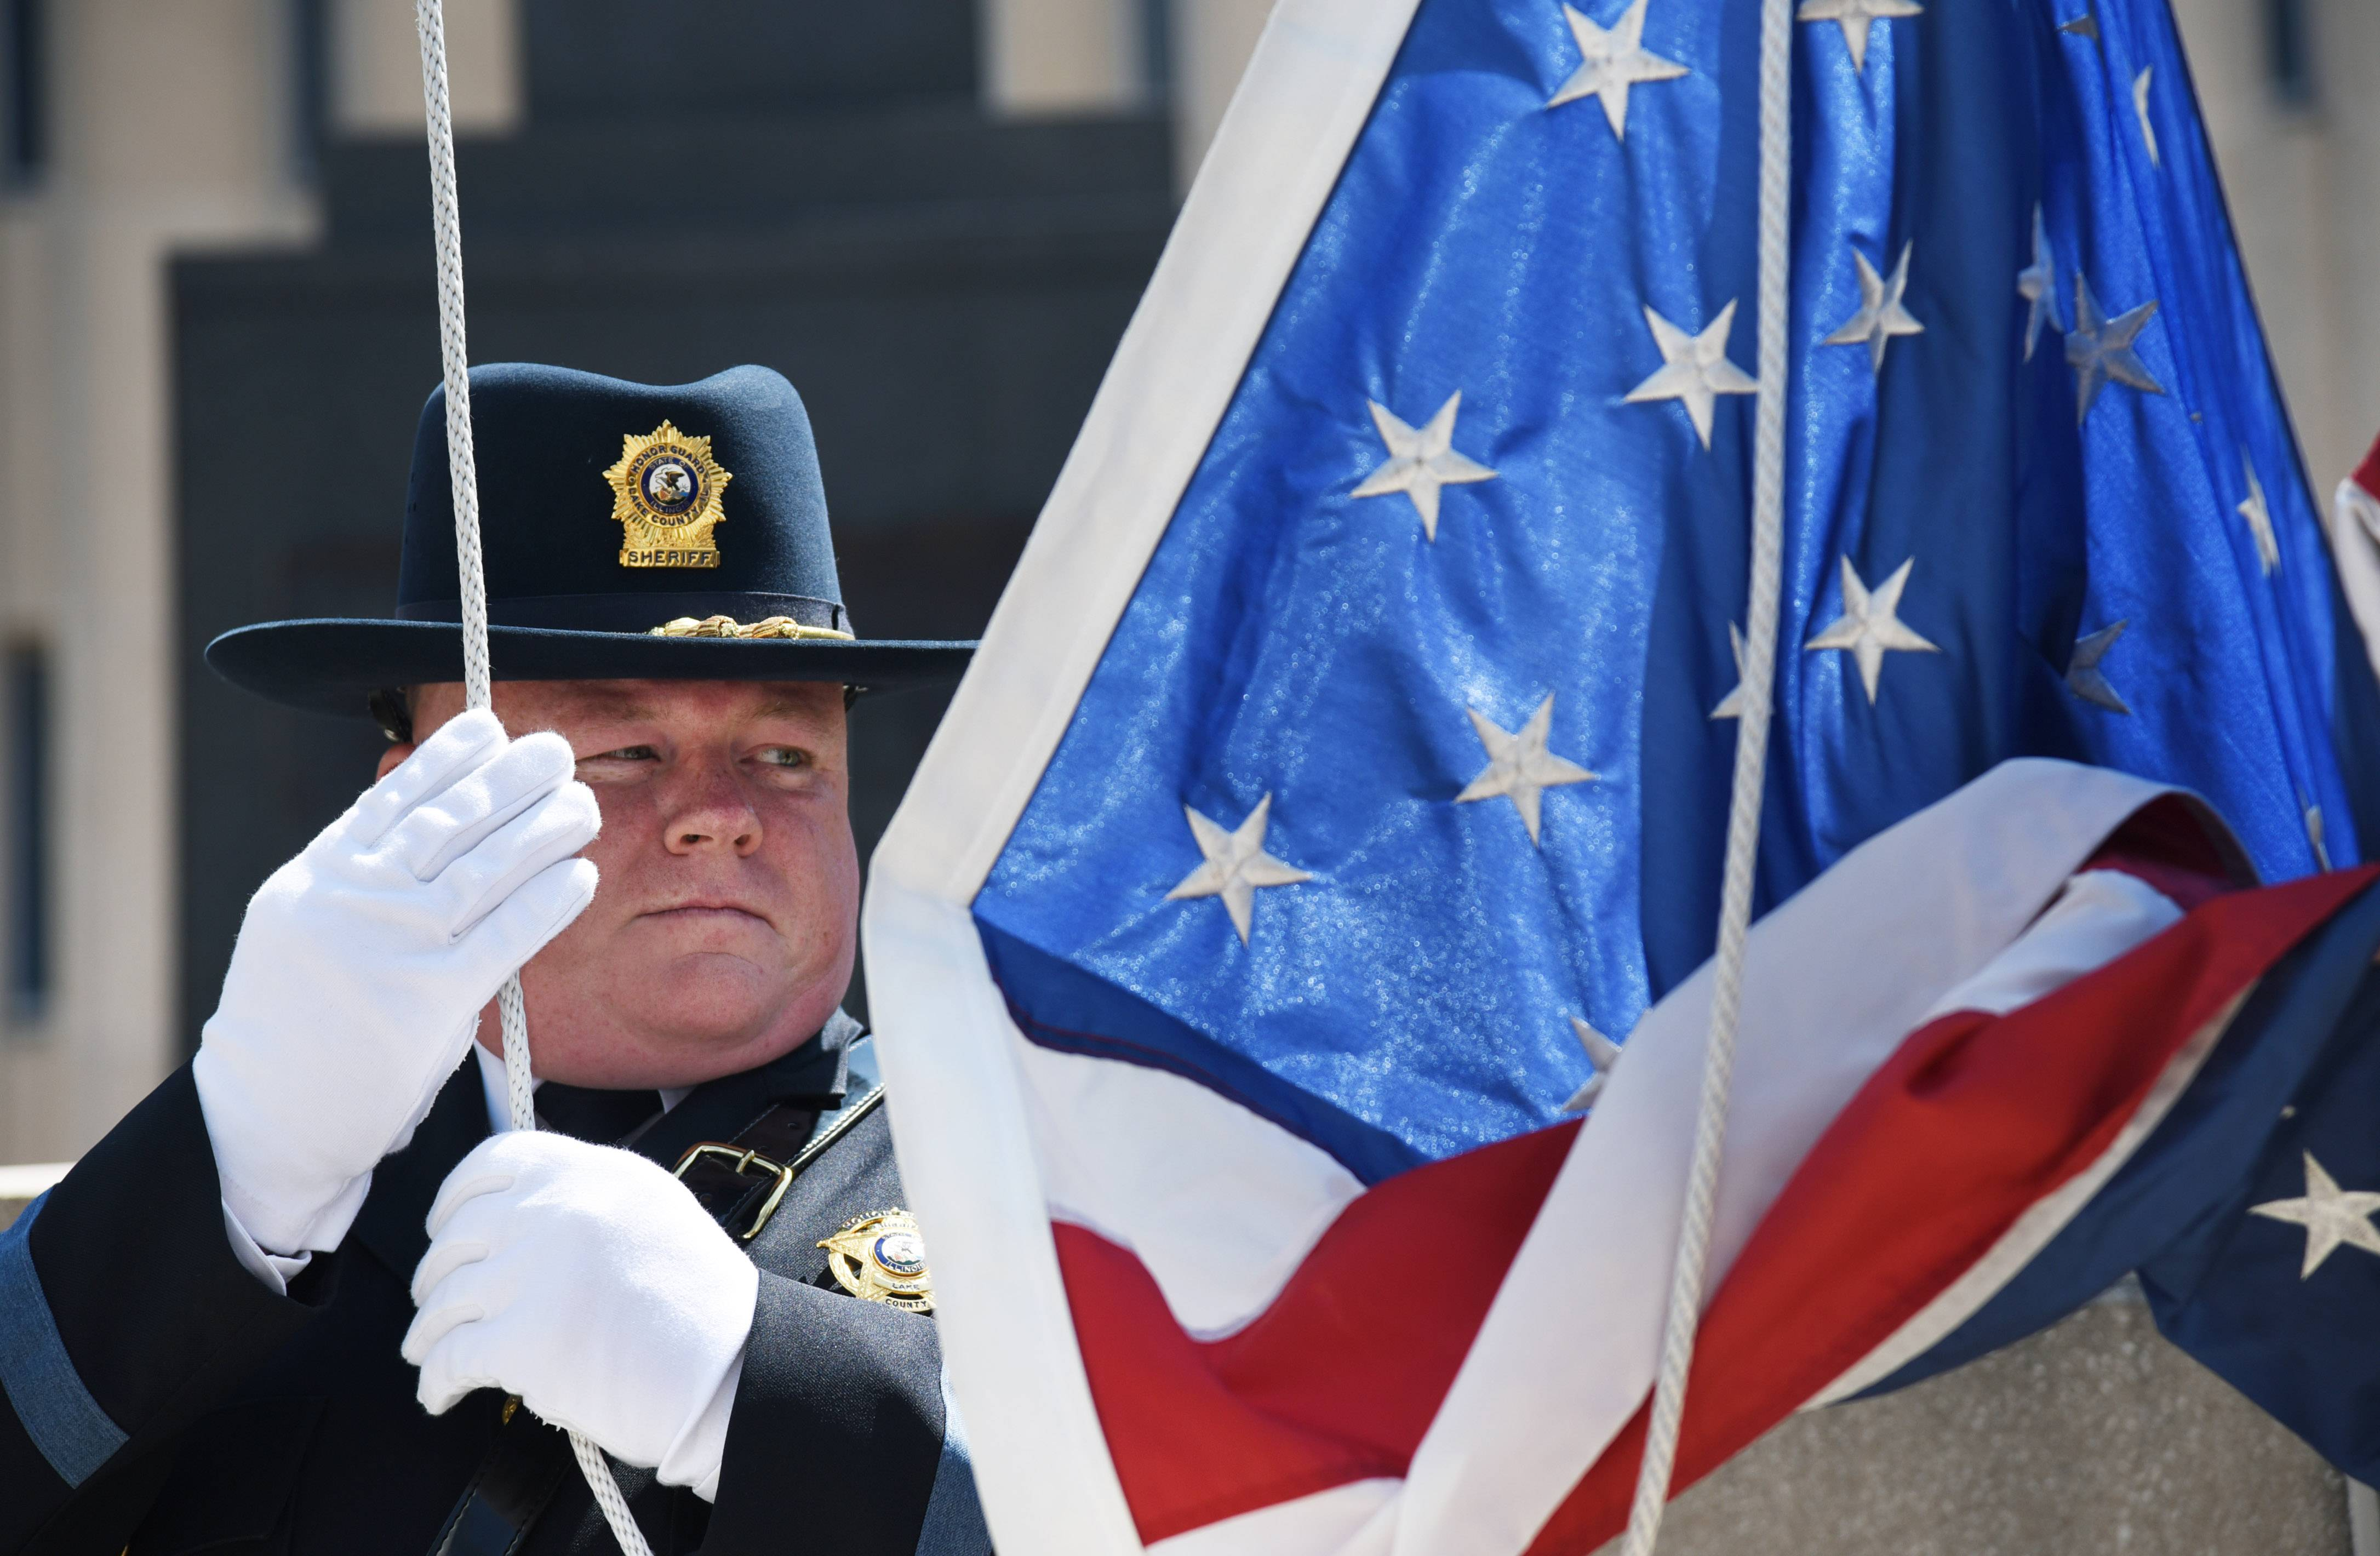 Sheriff's Deputy John Willer prepares to raise the American Flag during the Lake County 2017 Police Memorial in the Lincoln Memorial Plaza outside of the Lake County Courthouse Friday.